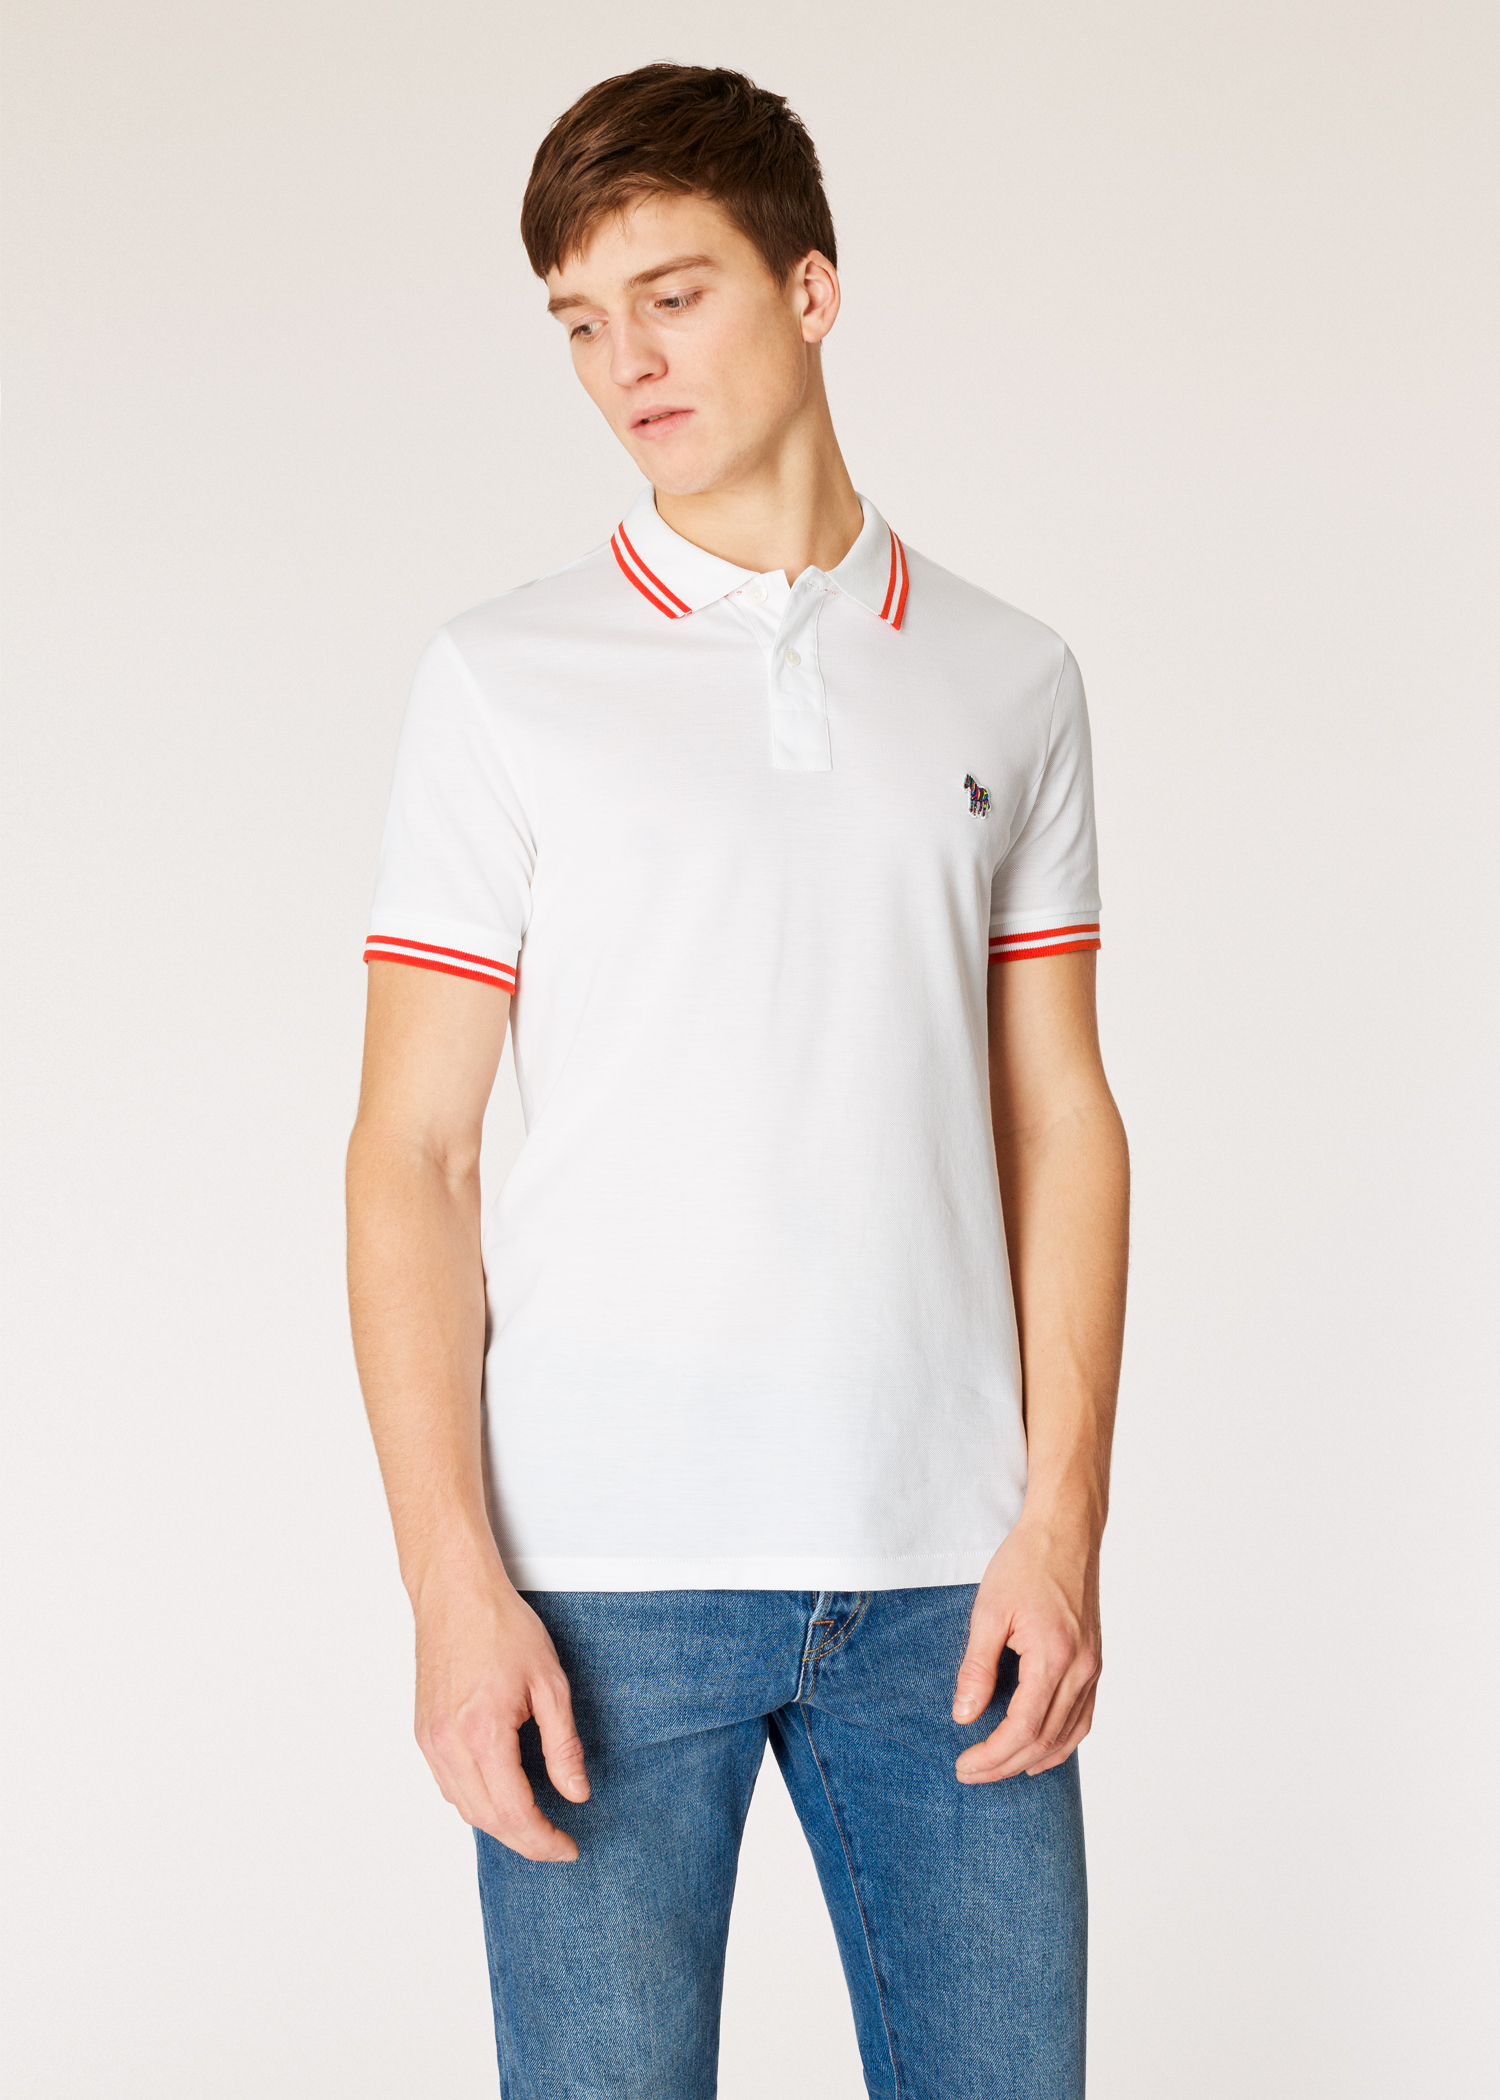 Model front view - Men s Slim-Fit White Zebra Polo Shirt With Red Tipping  Paul 1f58f3a1a73e